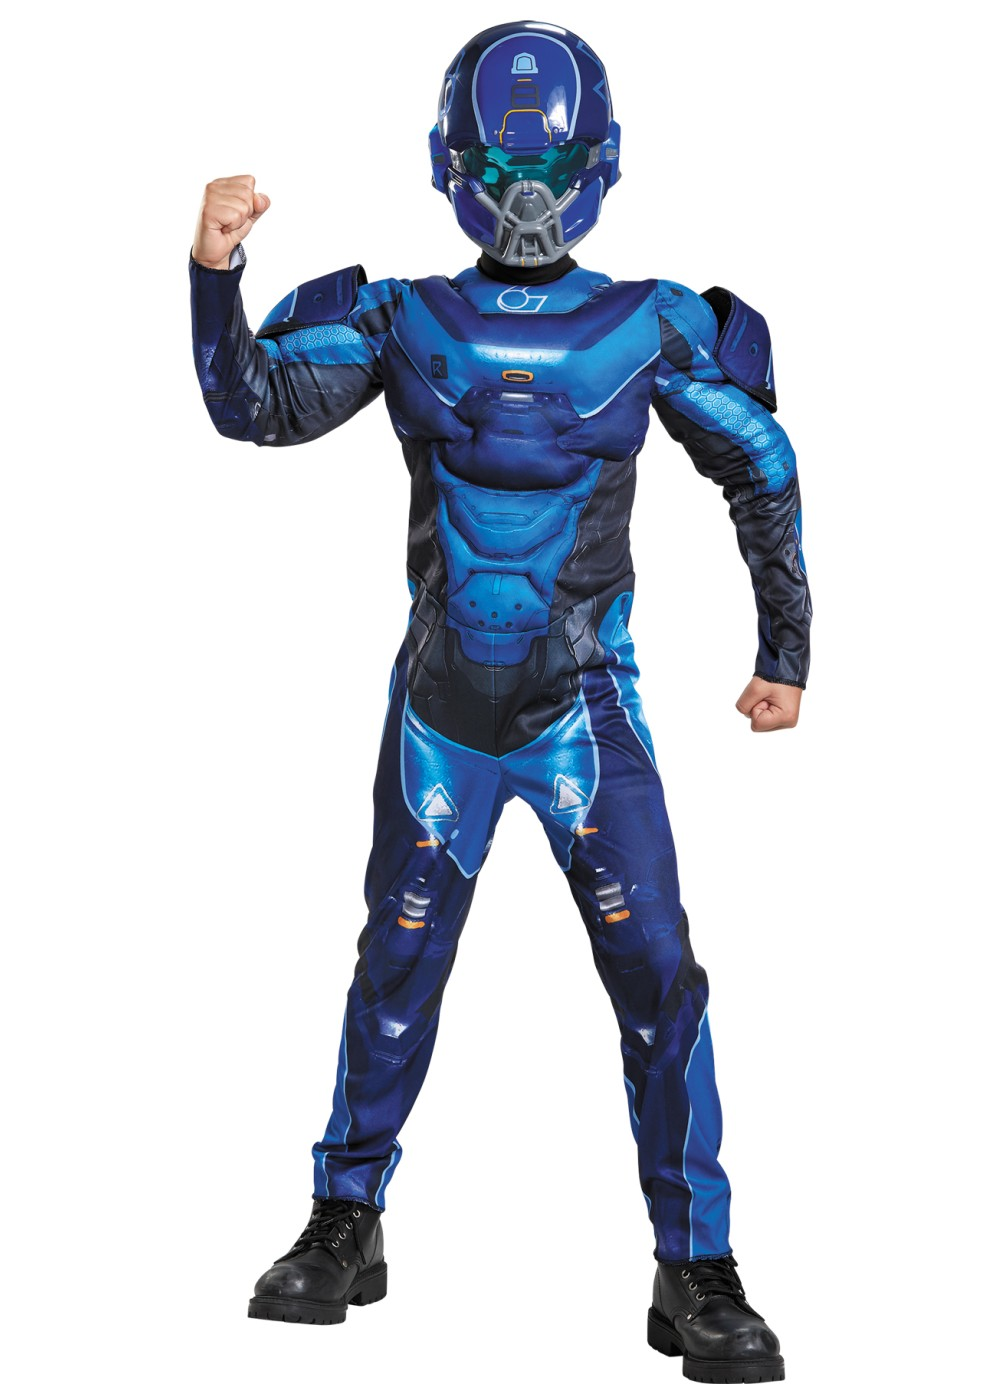 Halo Spartan Muscle Boys Costume Video Game Costumes